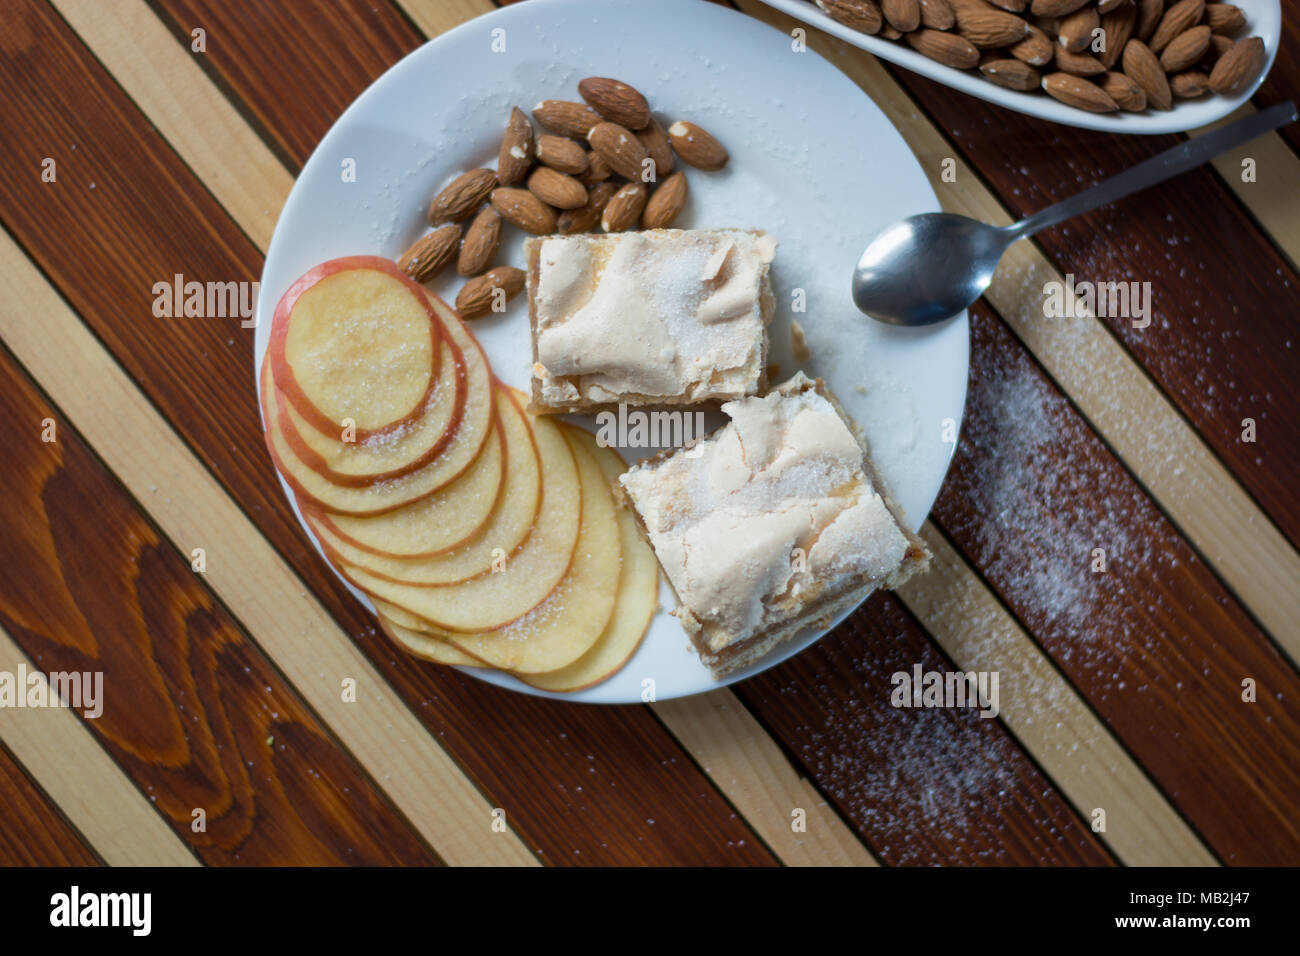 Square shape sliced omemade apple pie with kumquats and almonds on wooden background - Stock Image